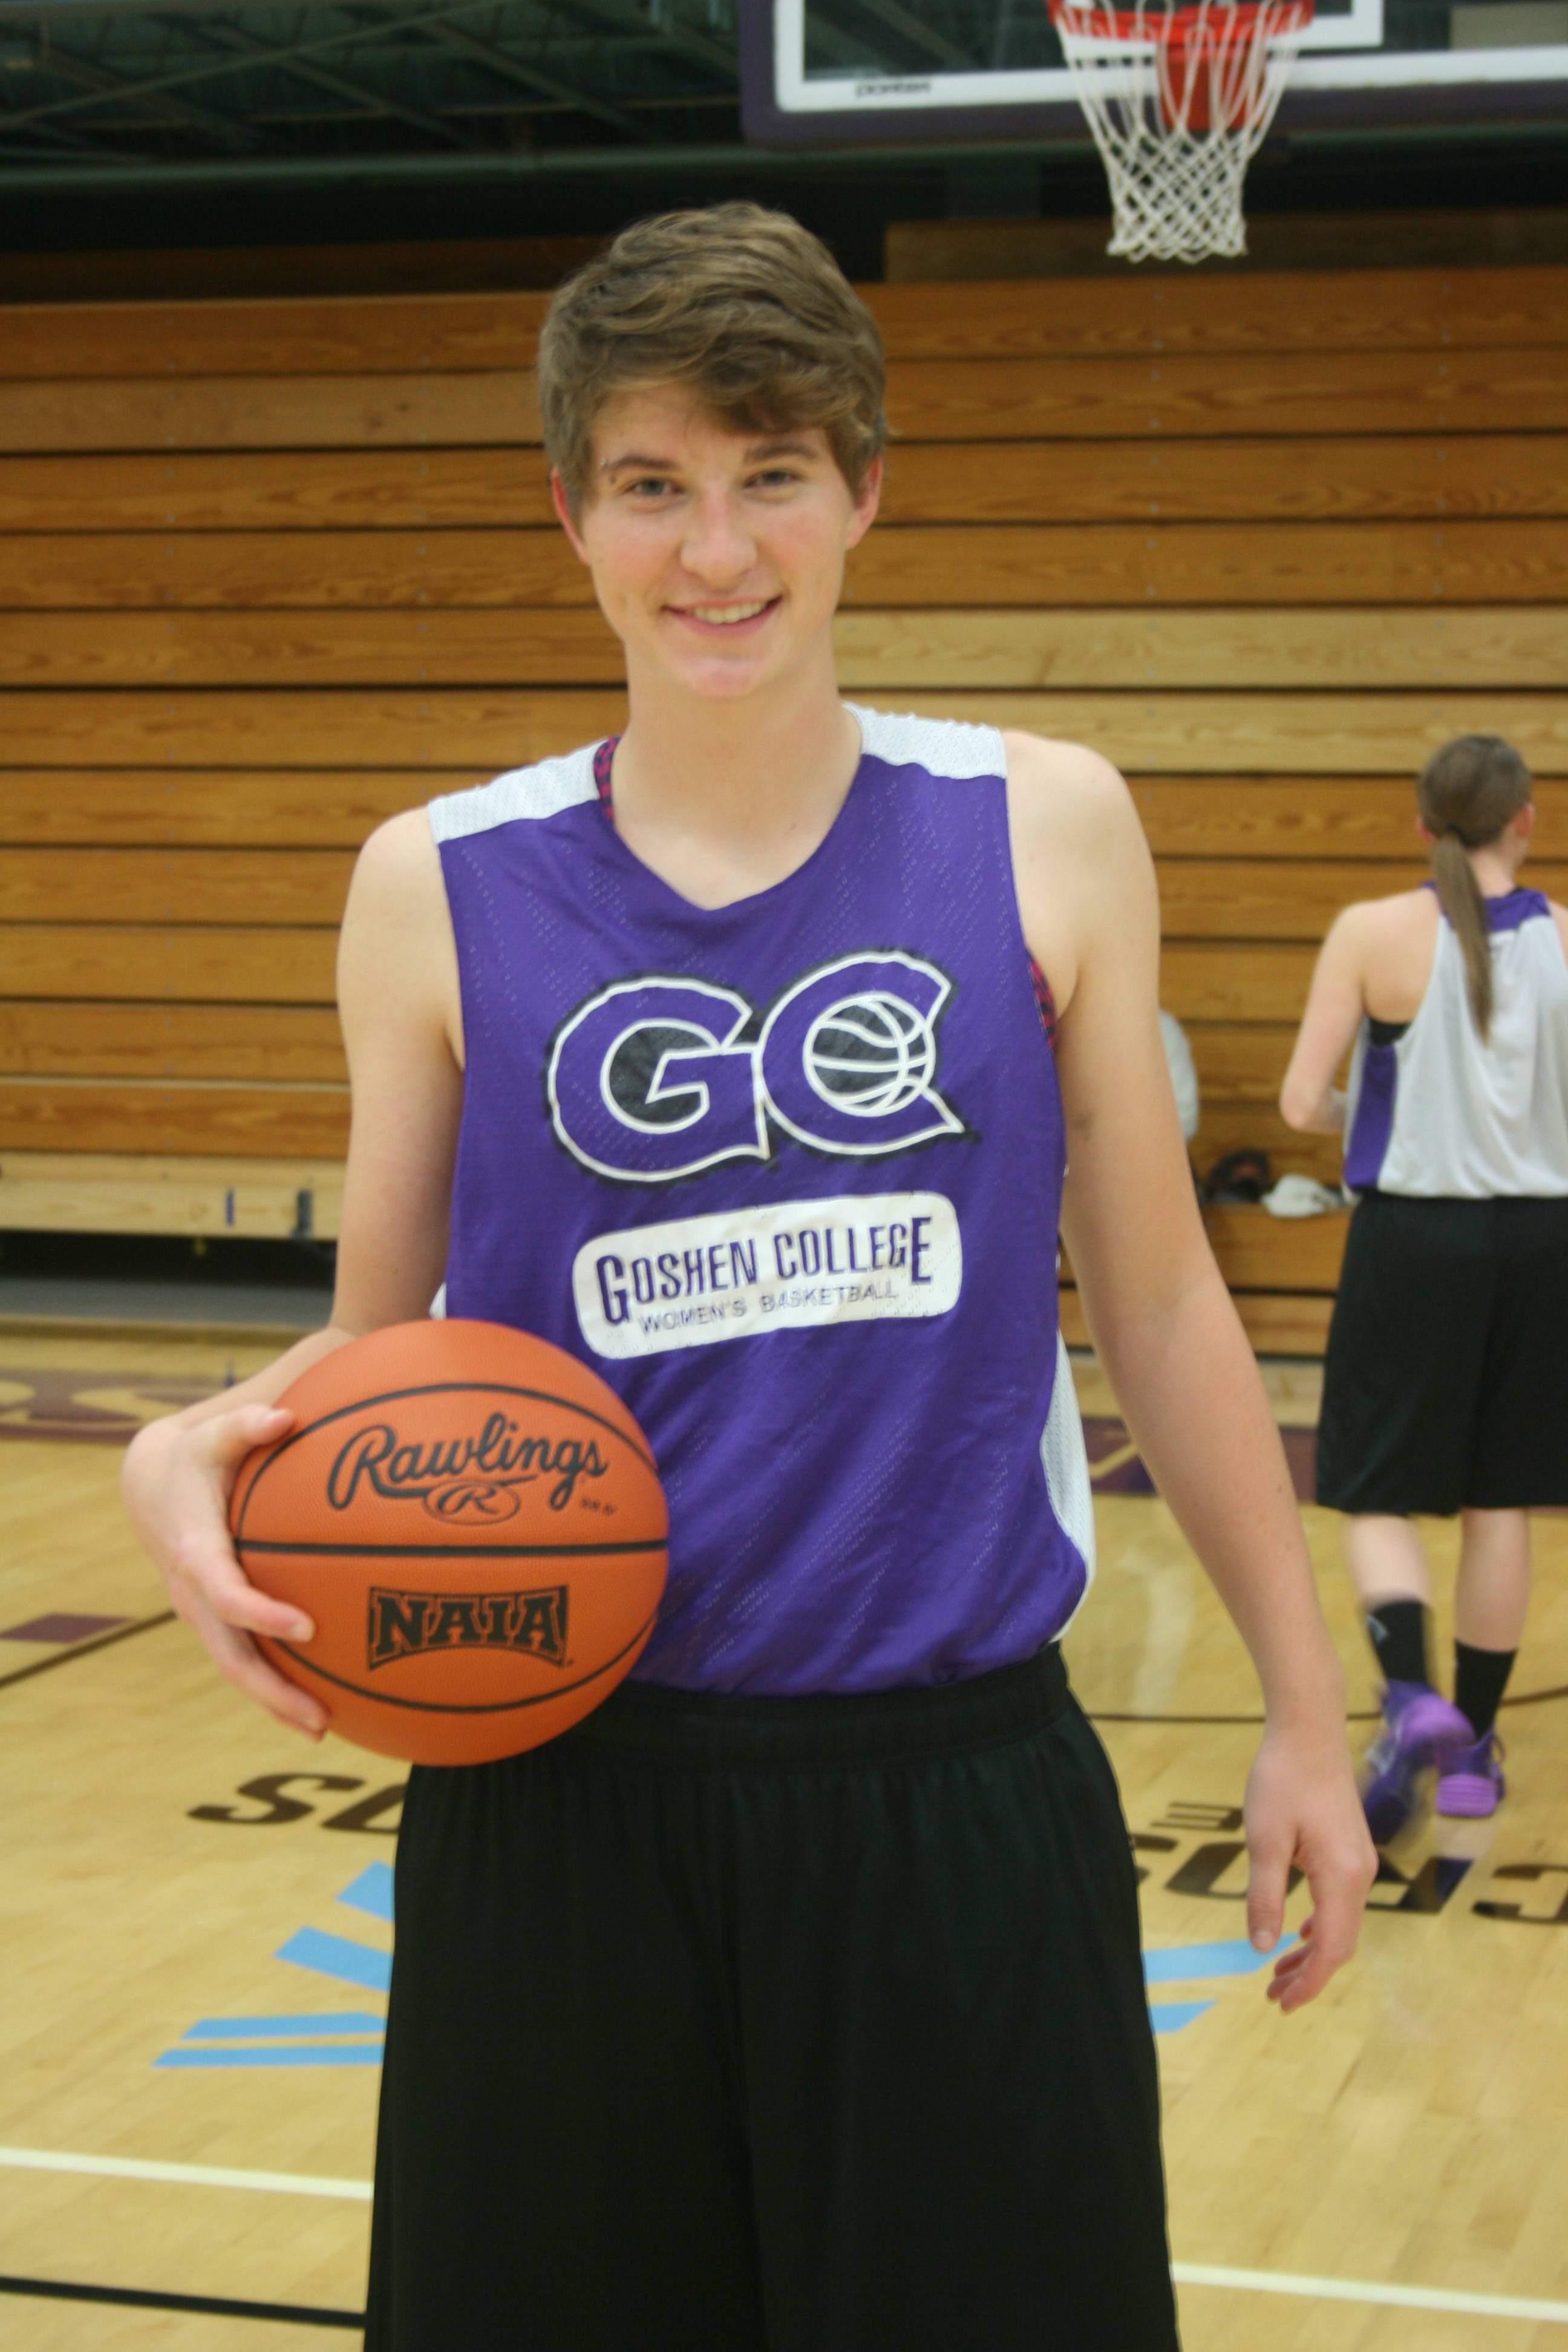 Natalie Thorne poses for a picture in her Goshen jersey, holding a basketball in one hand